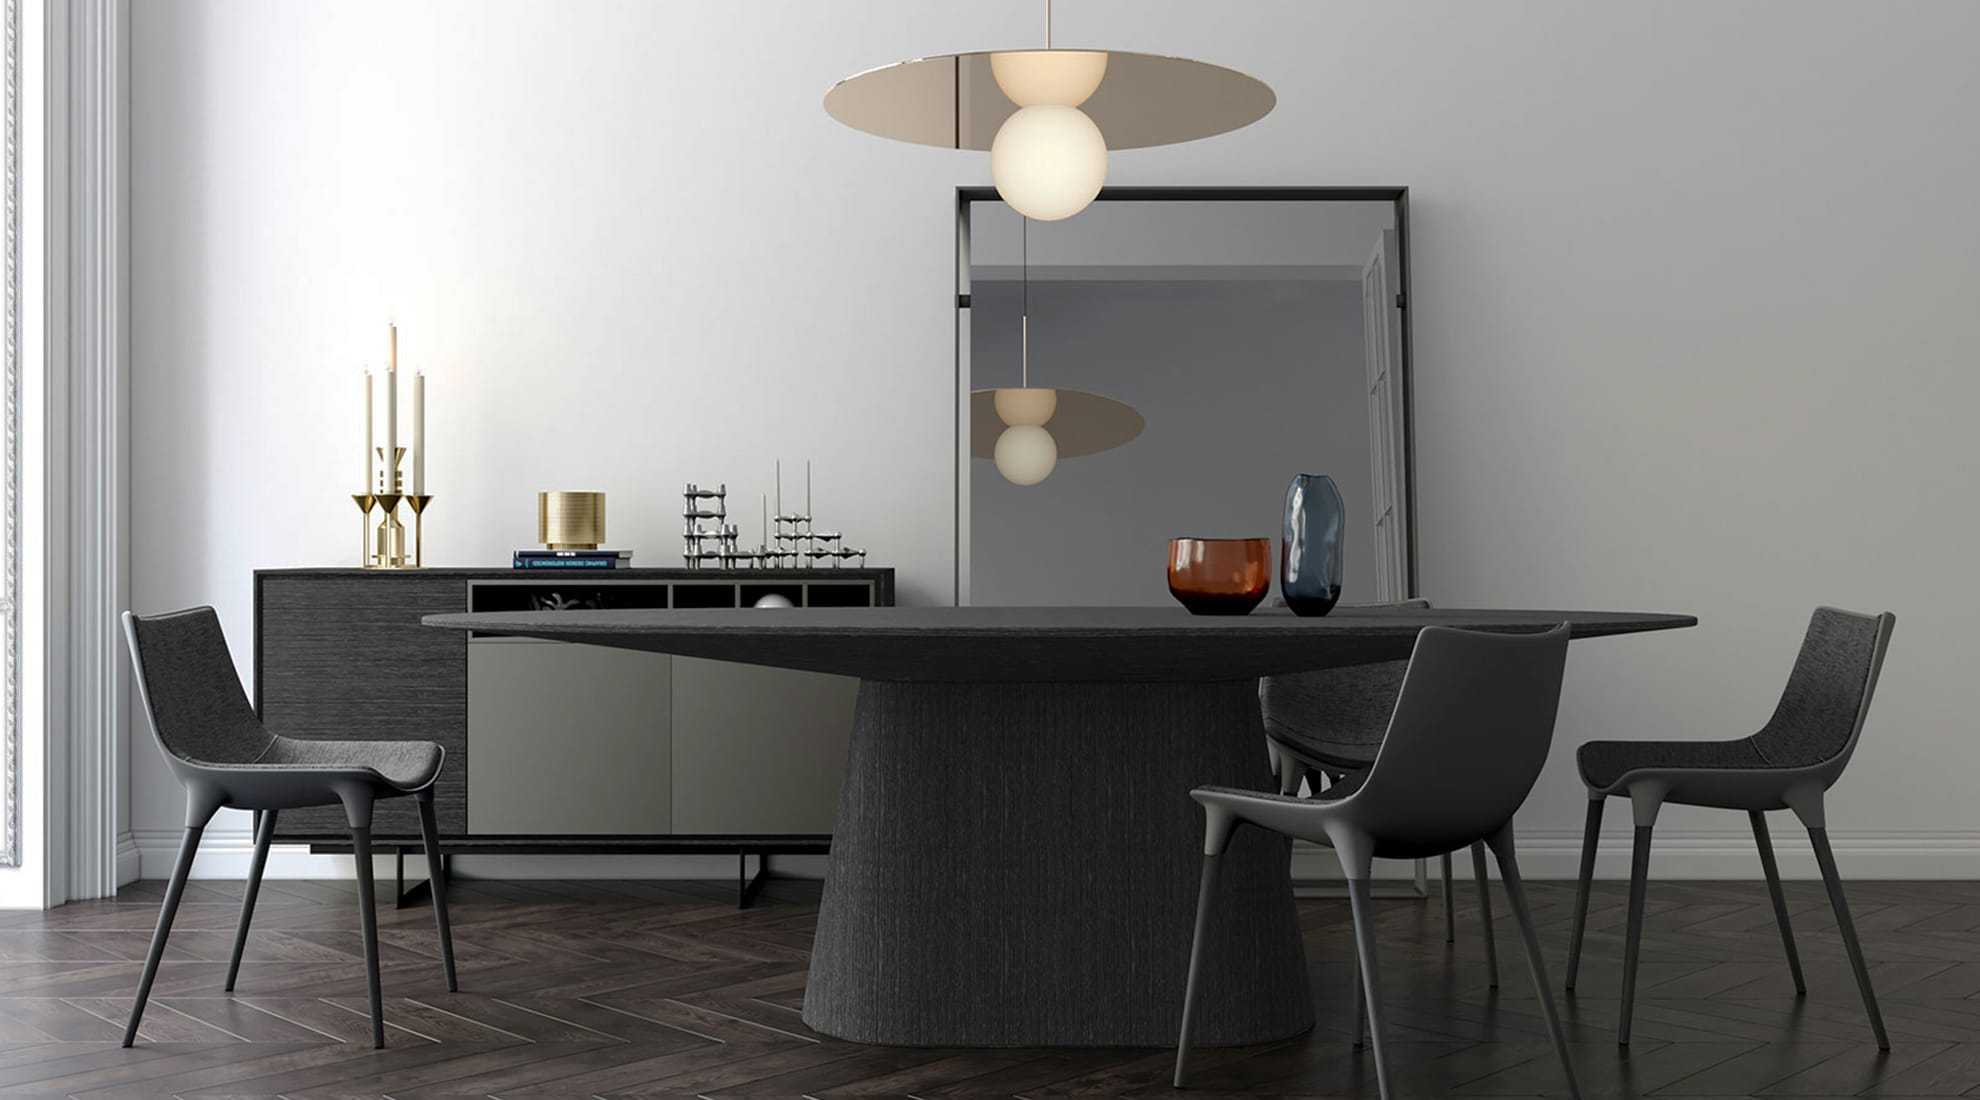 Sullivan Dining Table by Modloft and Bola Disc Pendant by Pablo Designs